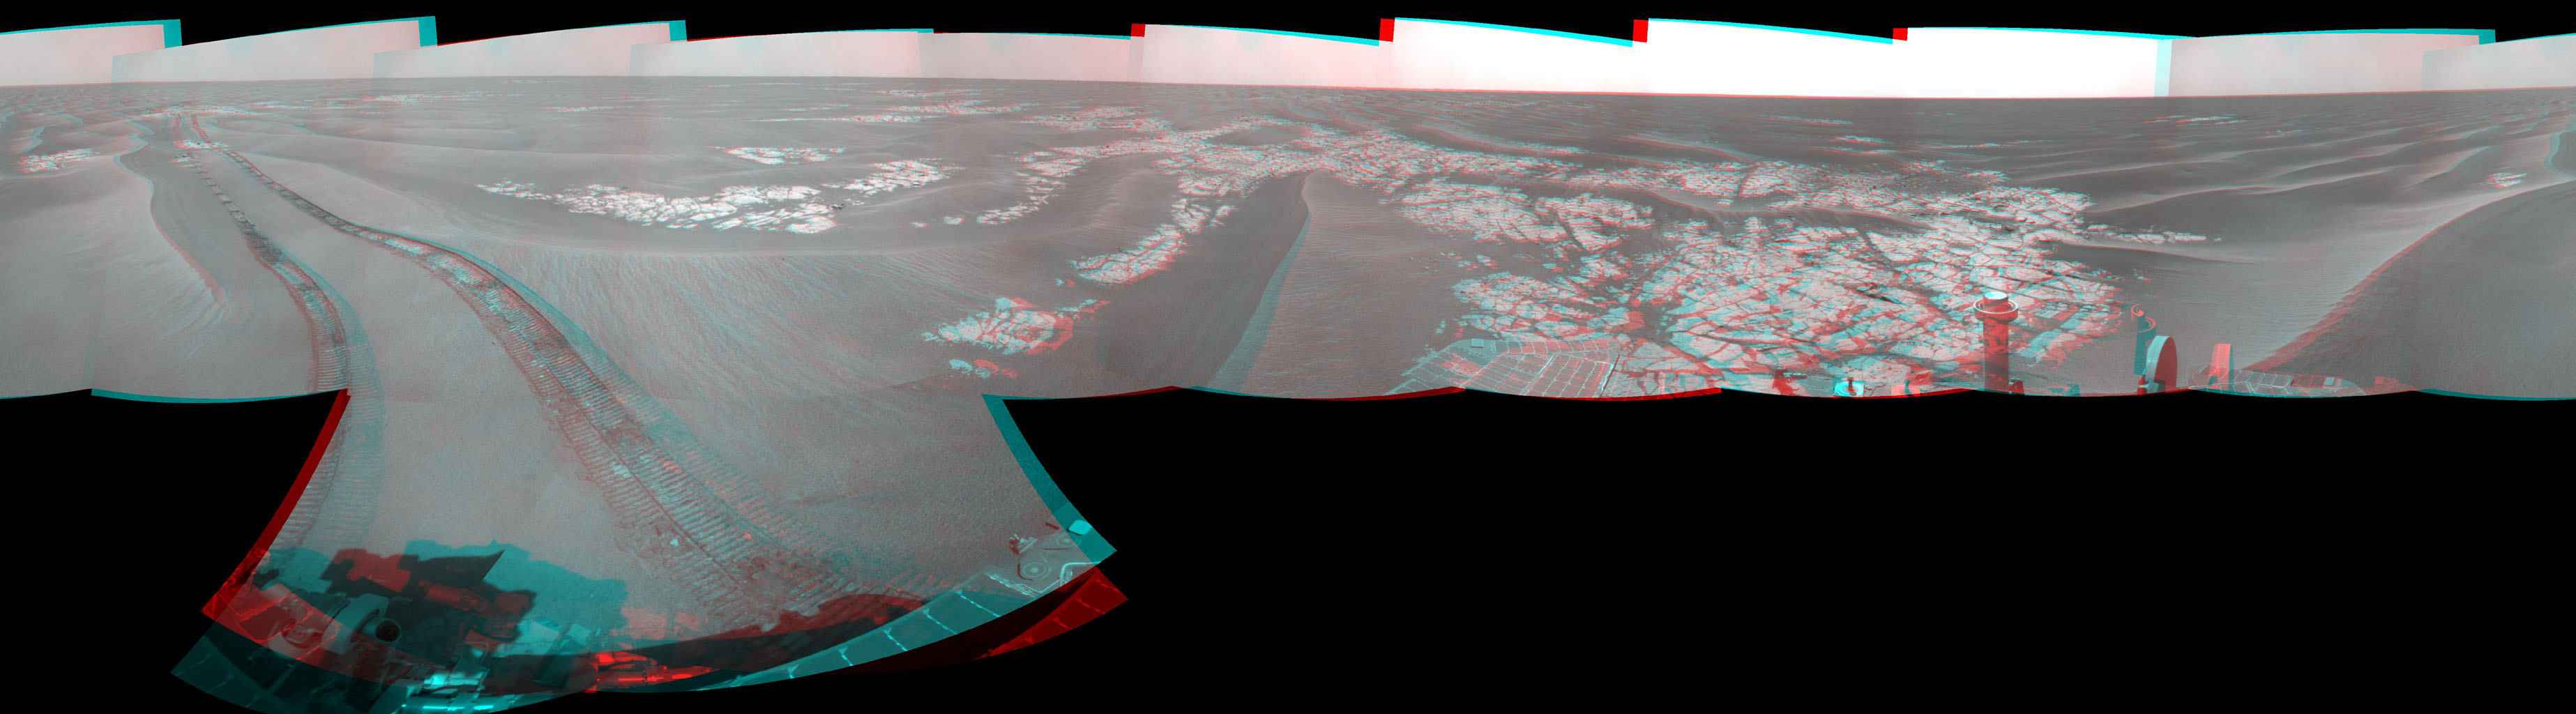 NASA's Mars Exploration Rover Opportunity combined images into this full-circle view of the rover's surroundings. Tracks from the rover's drive recede northward across dark-toned sand ripples in the Meridiani Planum region of Mars. You need 3D glasses.